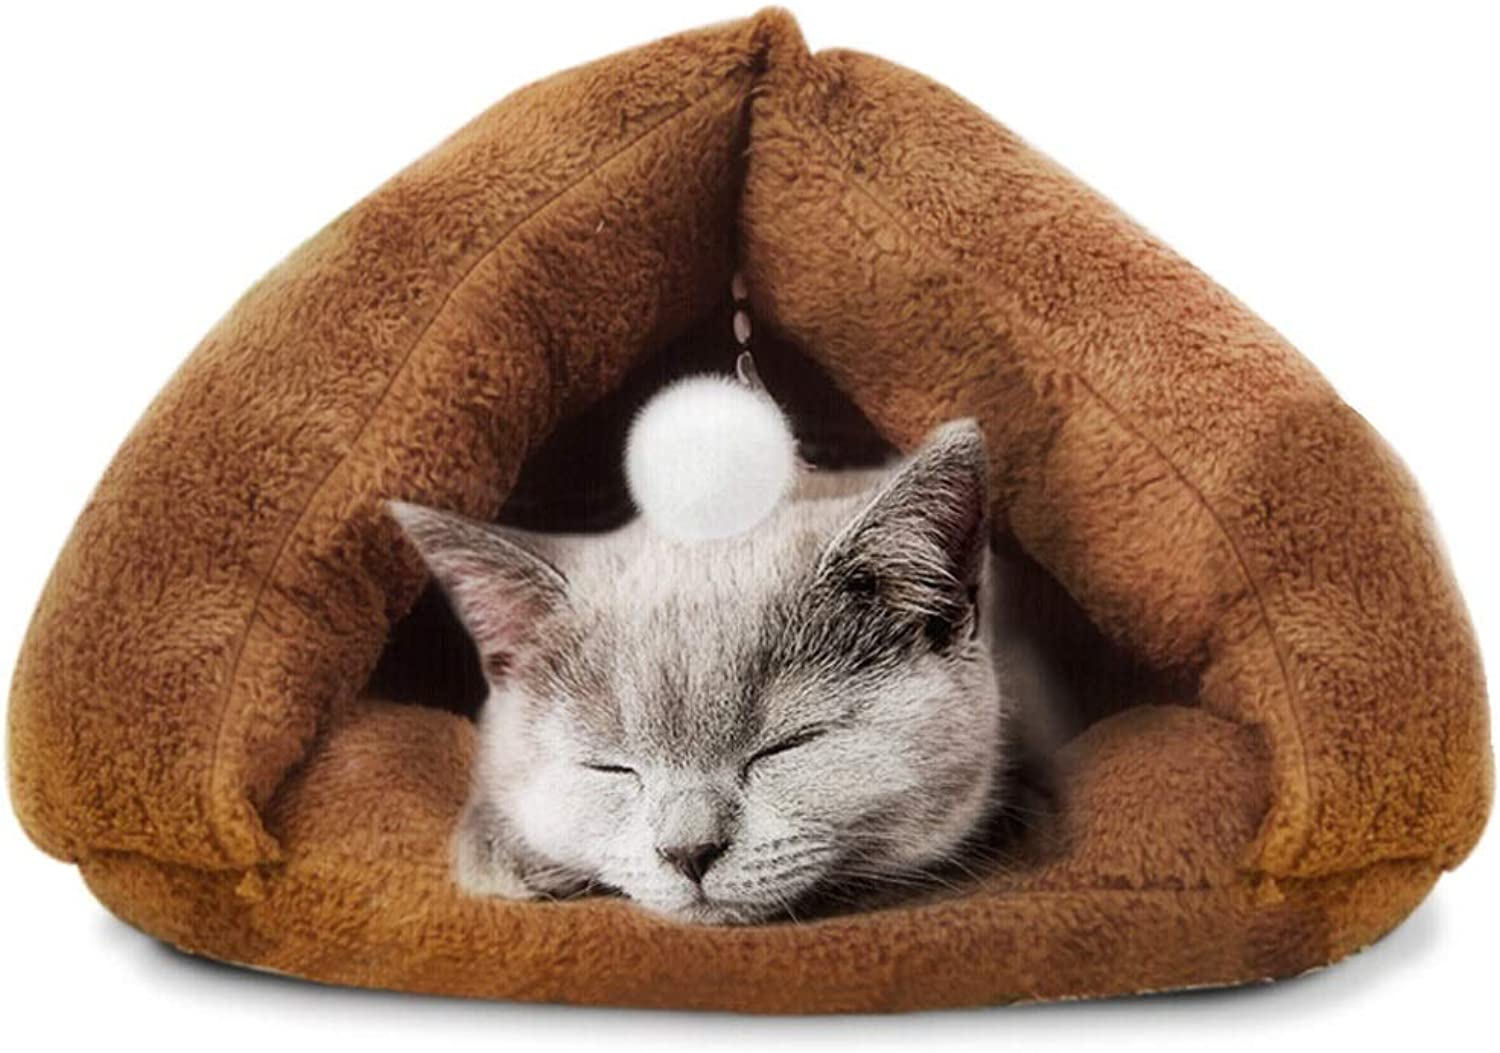 Alppq Plush Cat Nest Pet Cat Sleeping Bag Four Seasons Universal Pet Nest Plush Dog Bed Washable Mat Warm Luxury Pet Bed Cave Bed Easy to Clean Comfort Bed Soft Bed Pet Dog Cat Bed for Soft Warm Bed